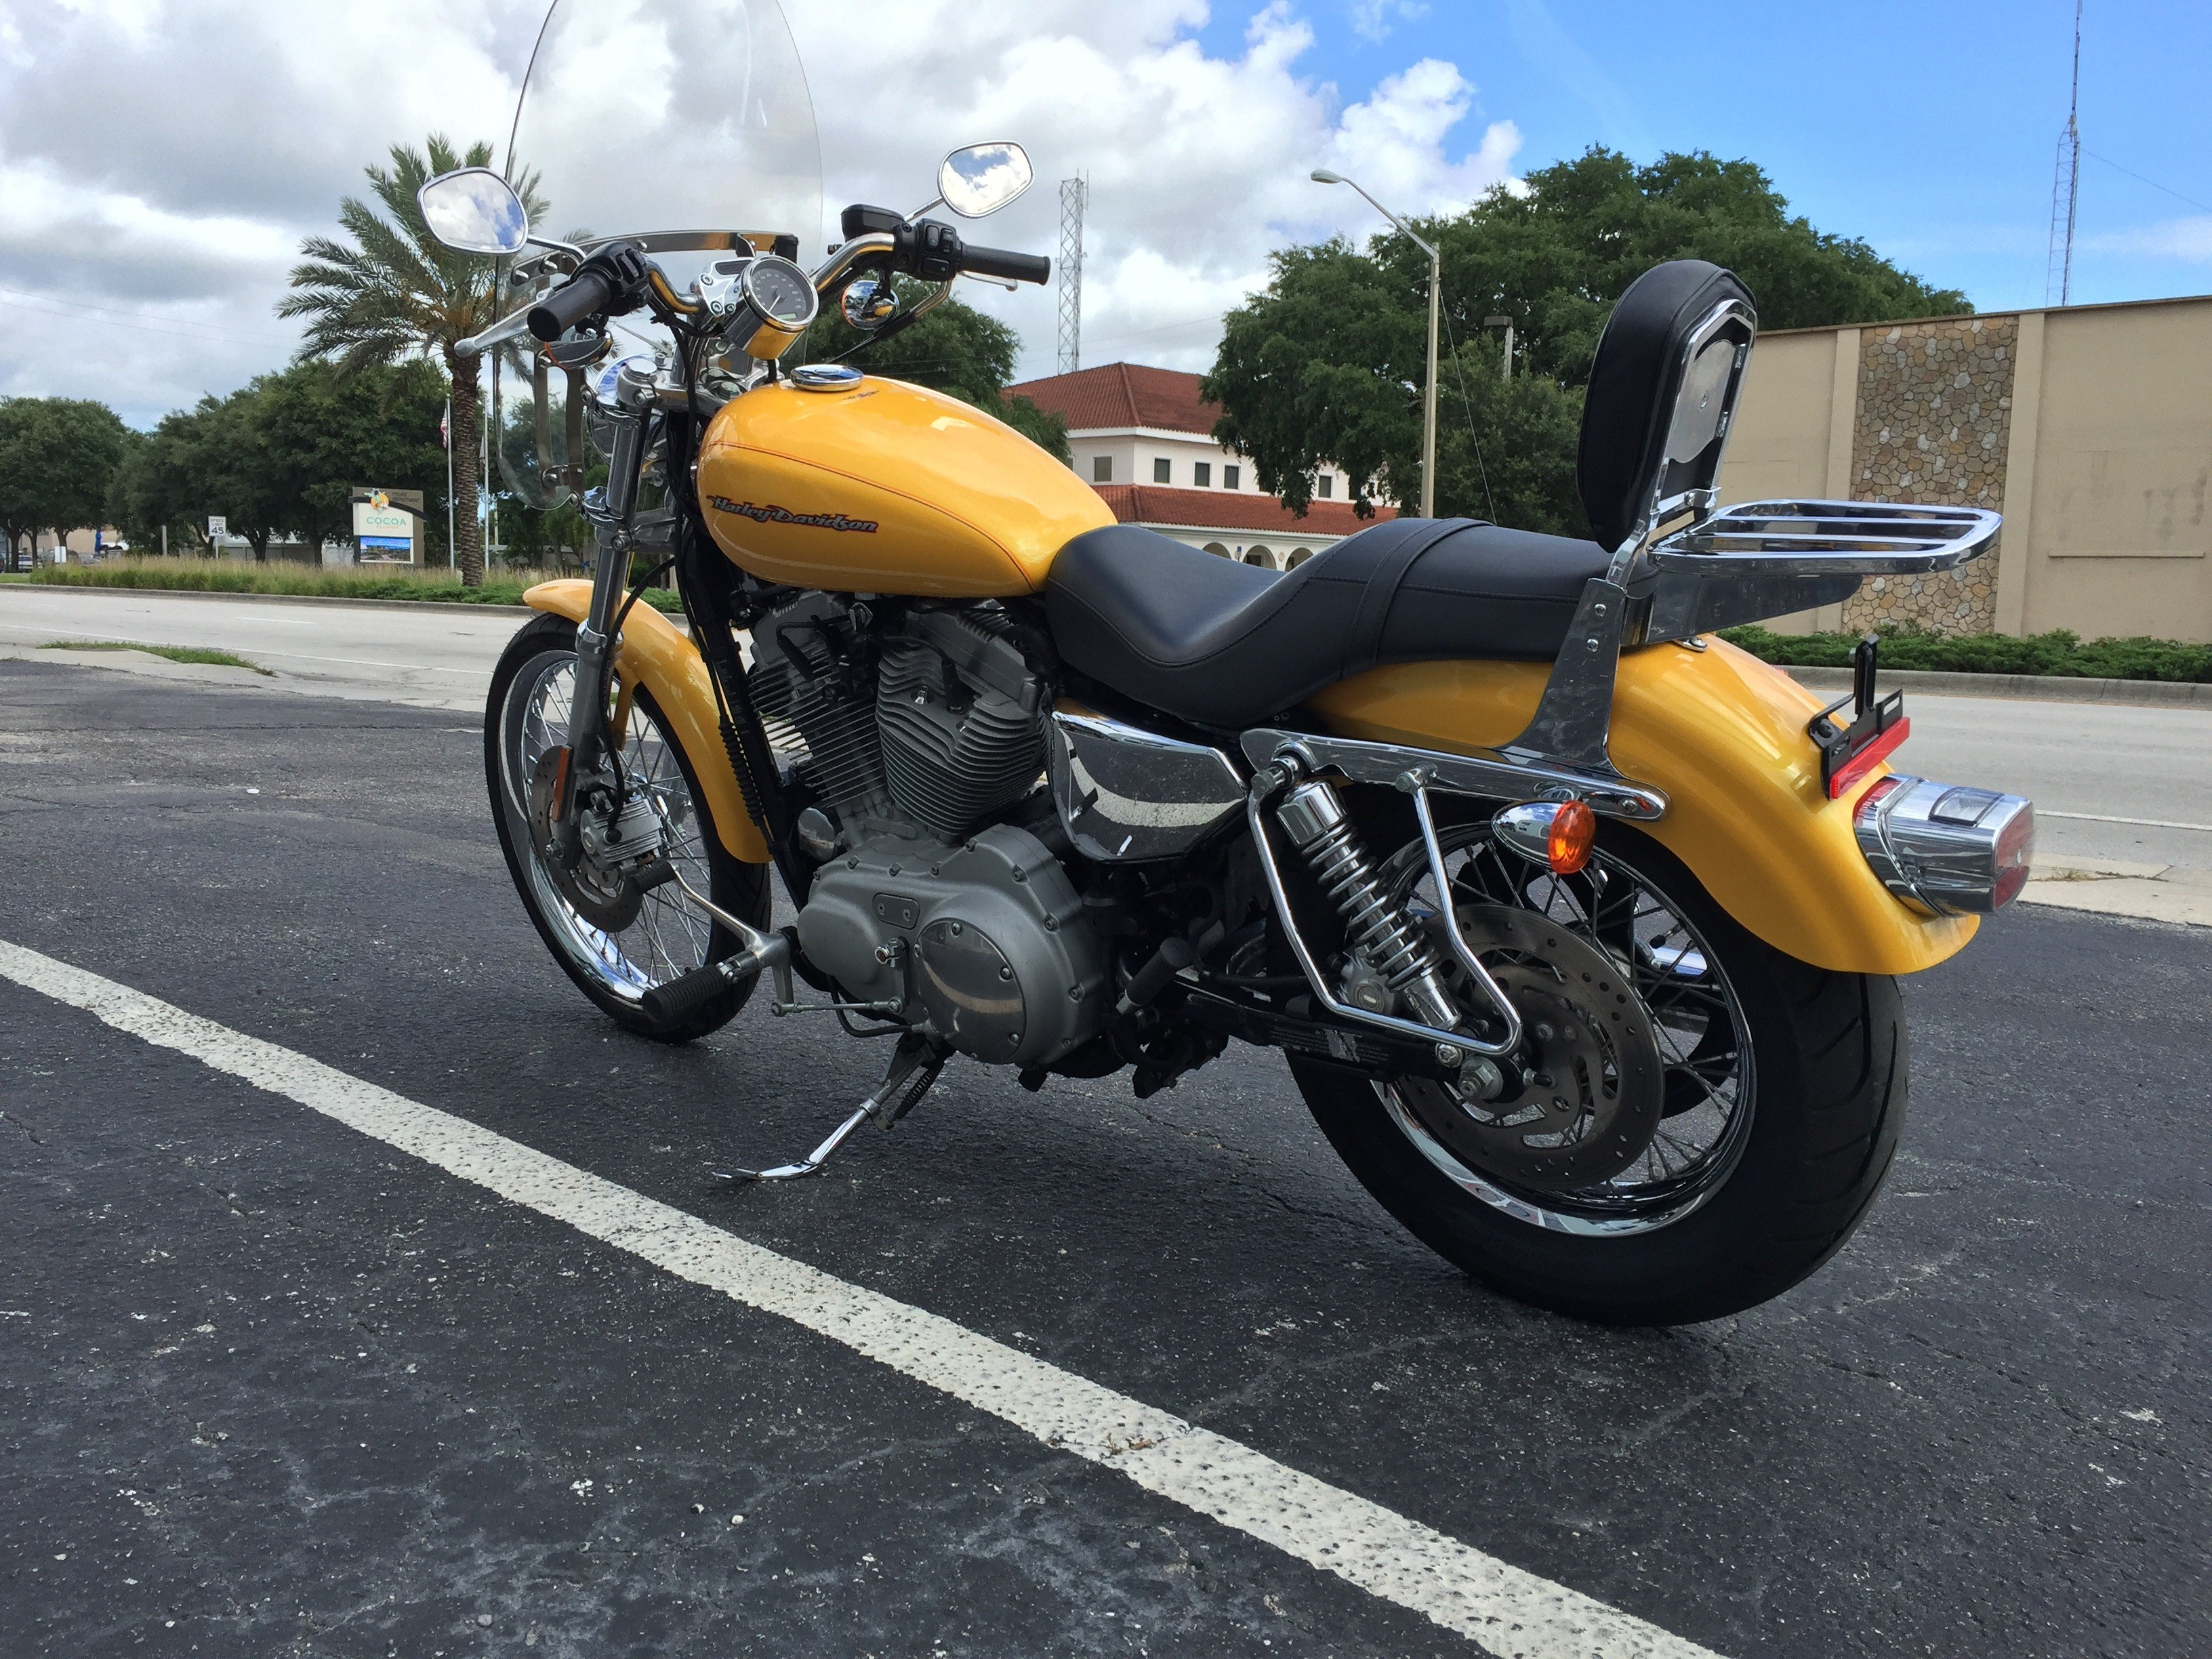 2005 Harley-Davidson Sportster® XL 883C in Cocoa, Florida